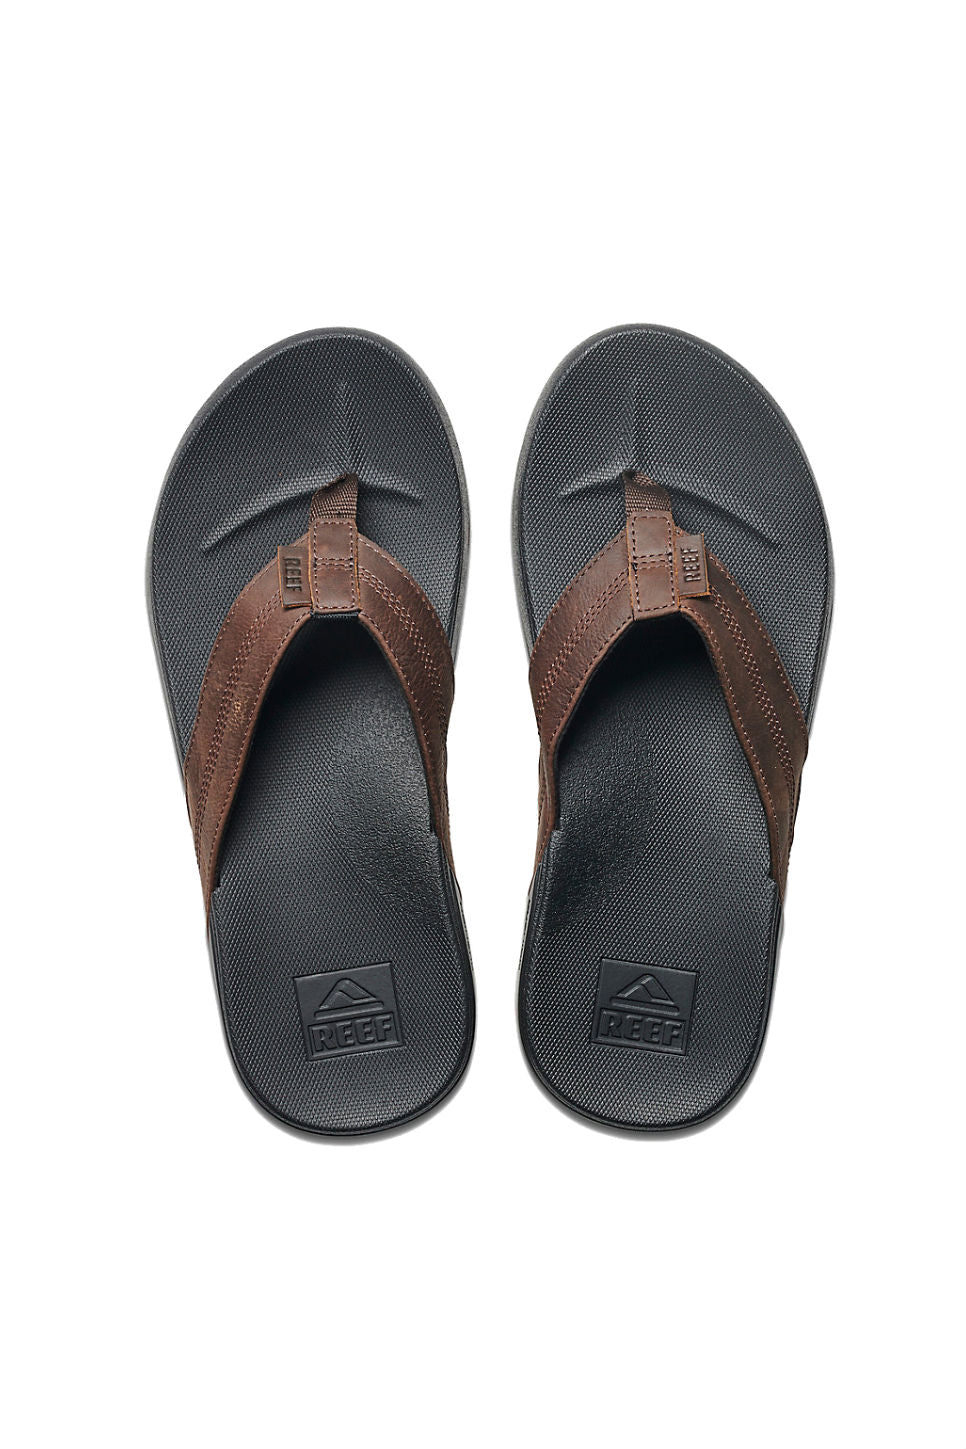 Reef - Cushion Bounce Phantom LE - Black/Brown